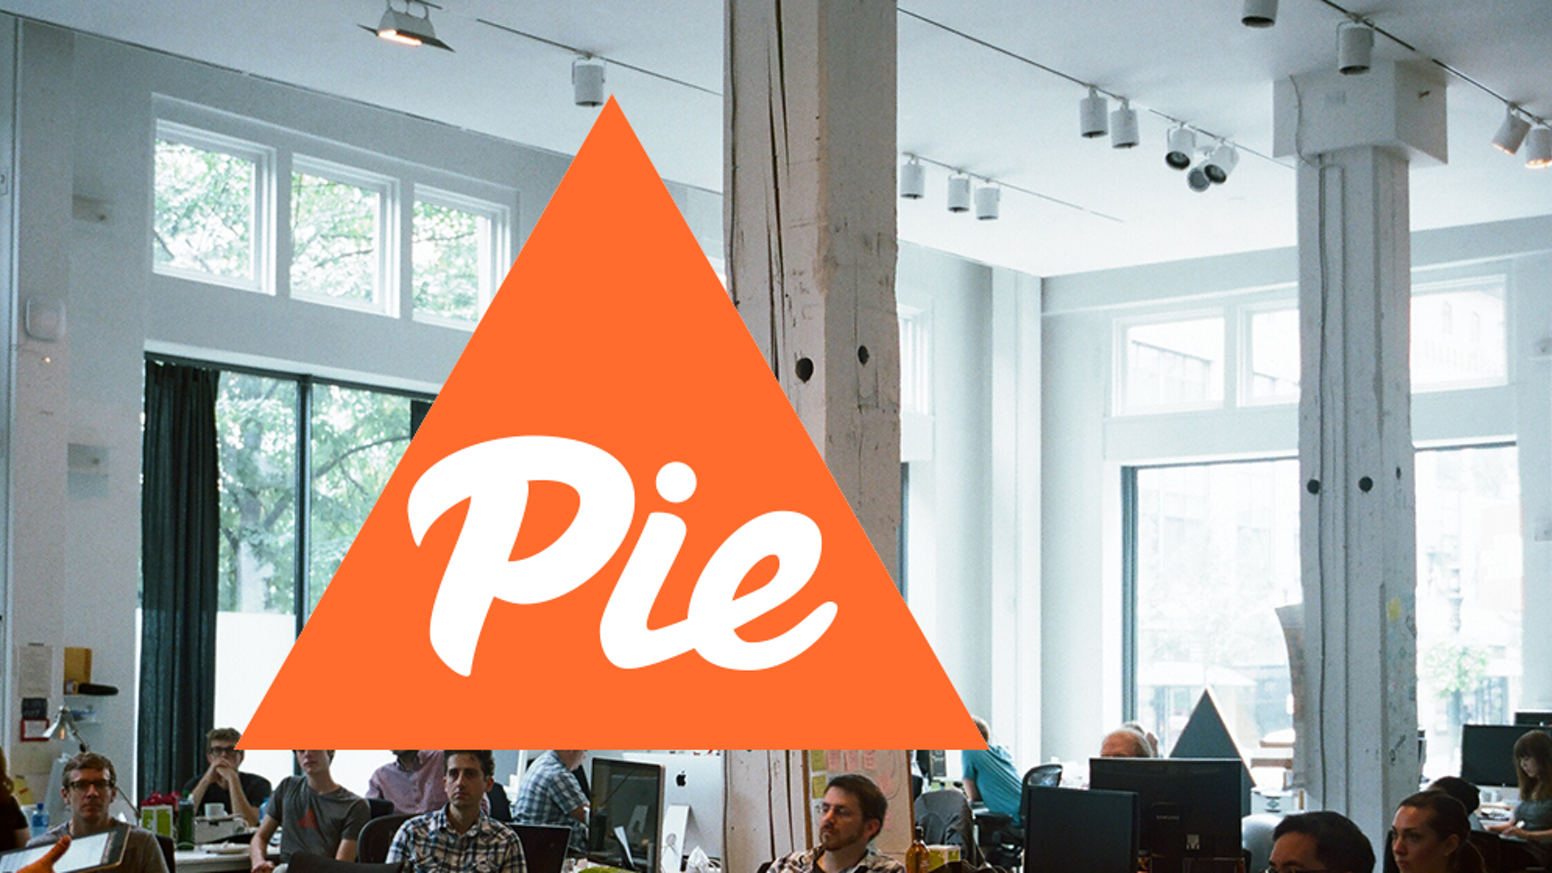 Building a startup accelerator is hard. That's why PIE wants to open source its learnings. So anyone can build one for their community.